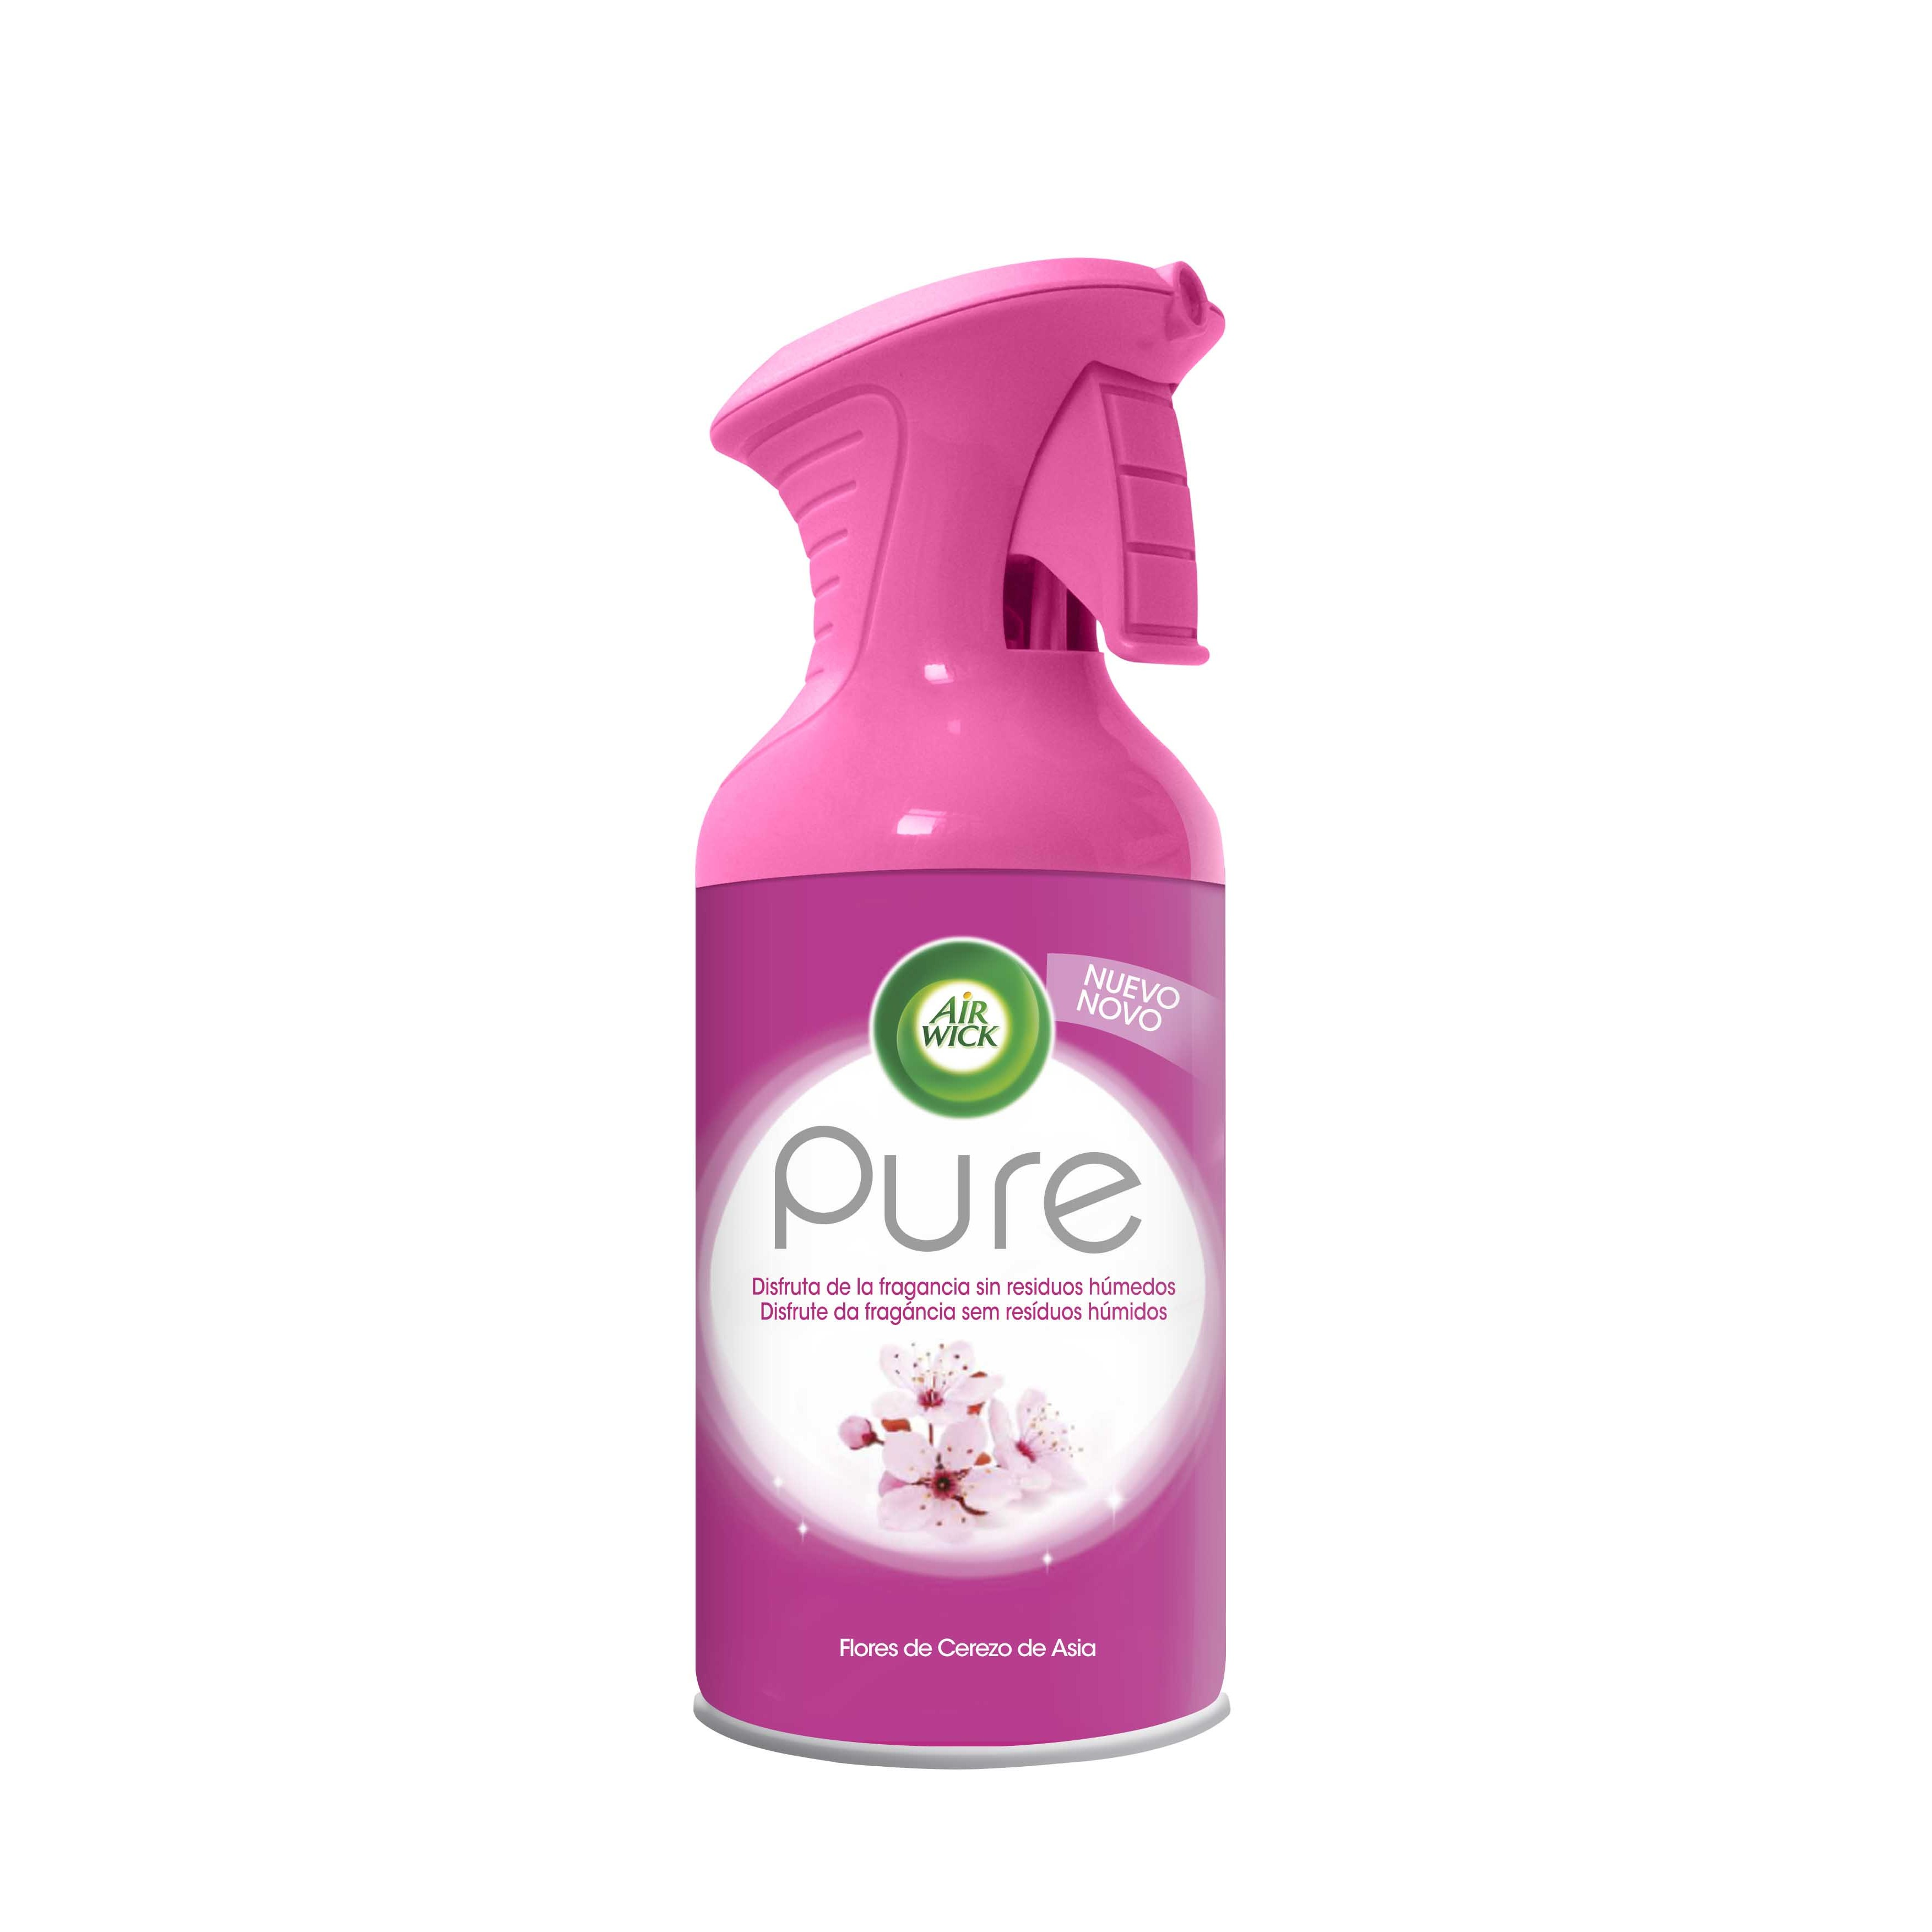 Air Wick pure flores cerezo asia aerosol de 25cl.